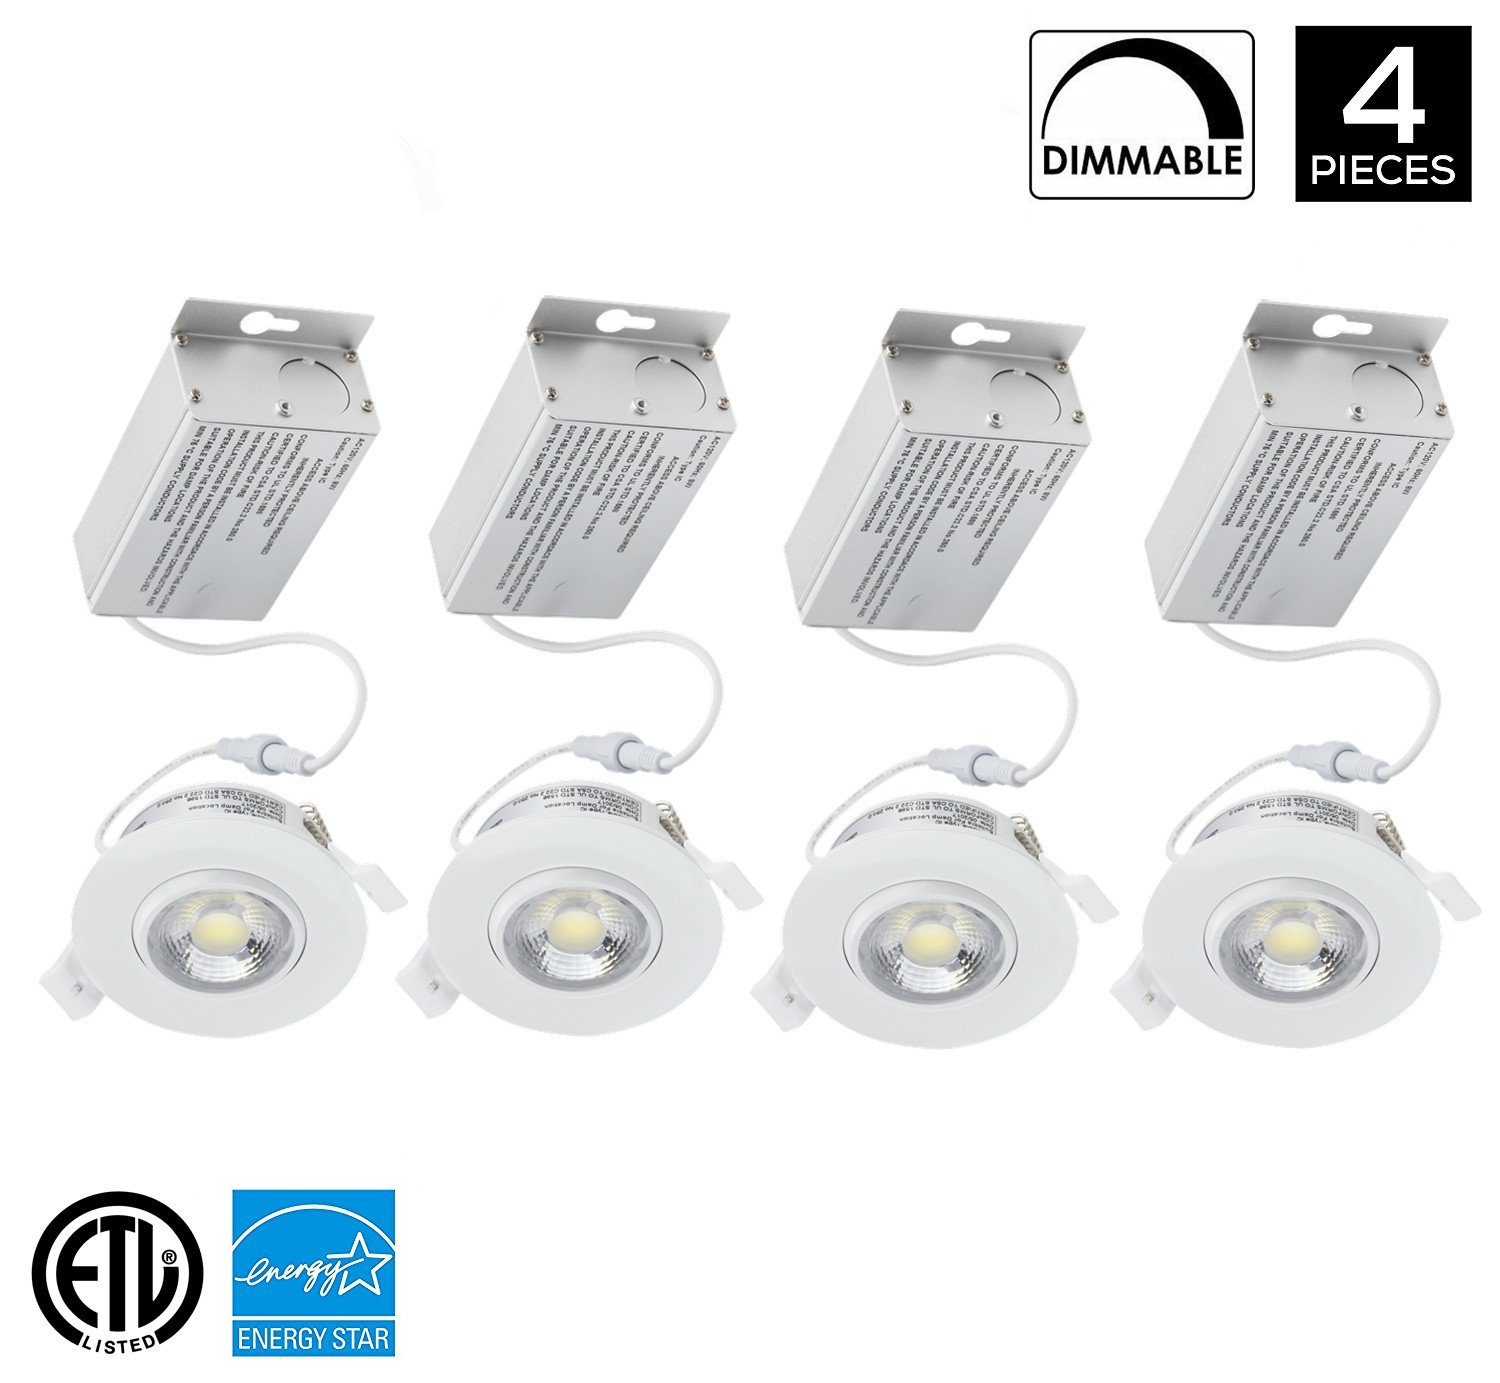 4Pack 8W 3 inch Gimbal Dimmable LED Downlight, IC Rated, No Can Needed, Directional Adjustable, Recessed Lighting Fixture (65W Replacement) 3000K Warm White Energy Star LED Ceiling Light 750 Lumens